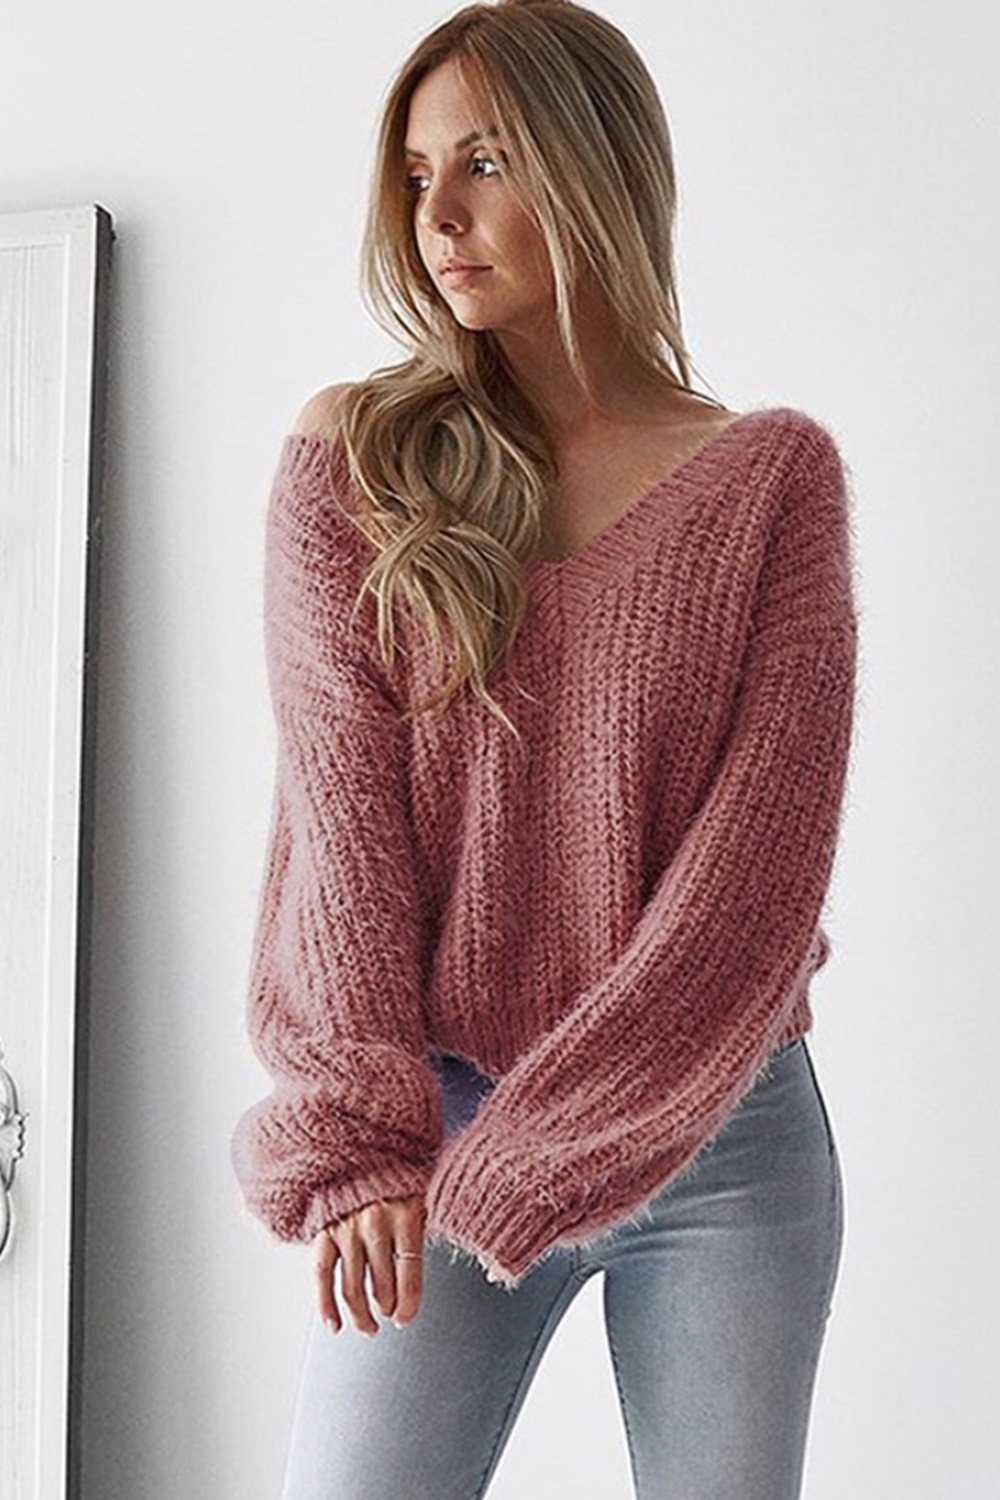 Pink sweater with open back - Laura